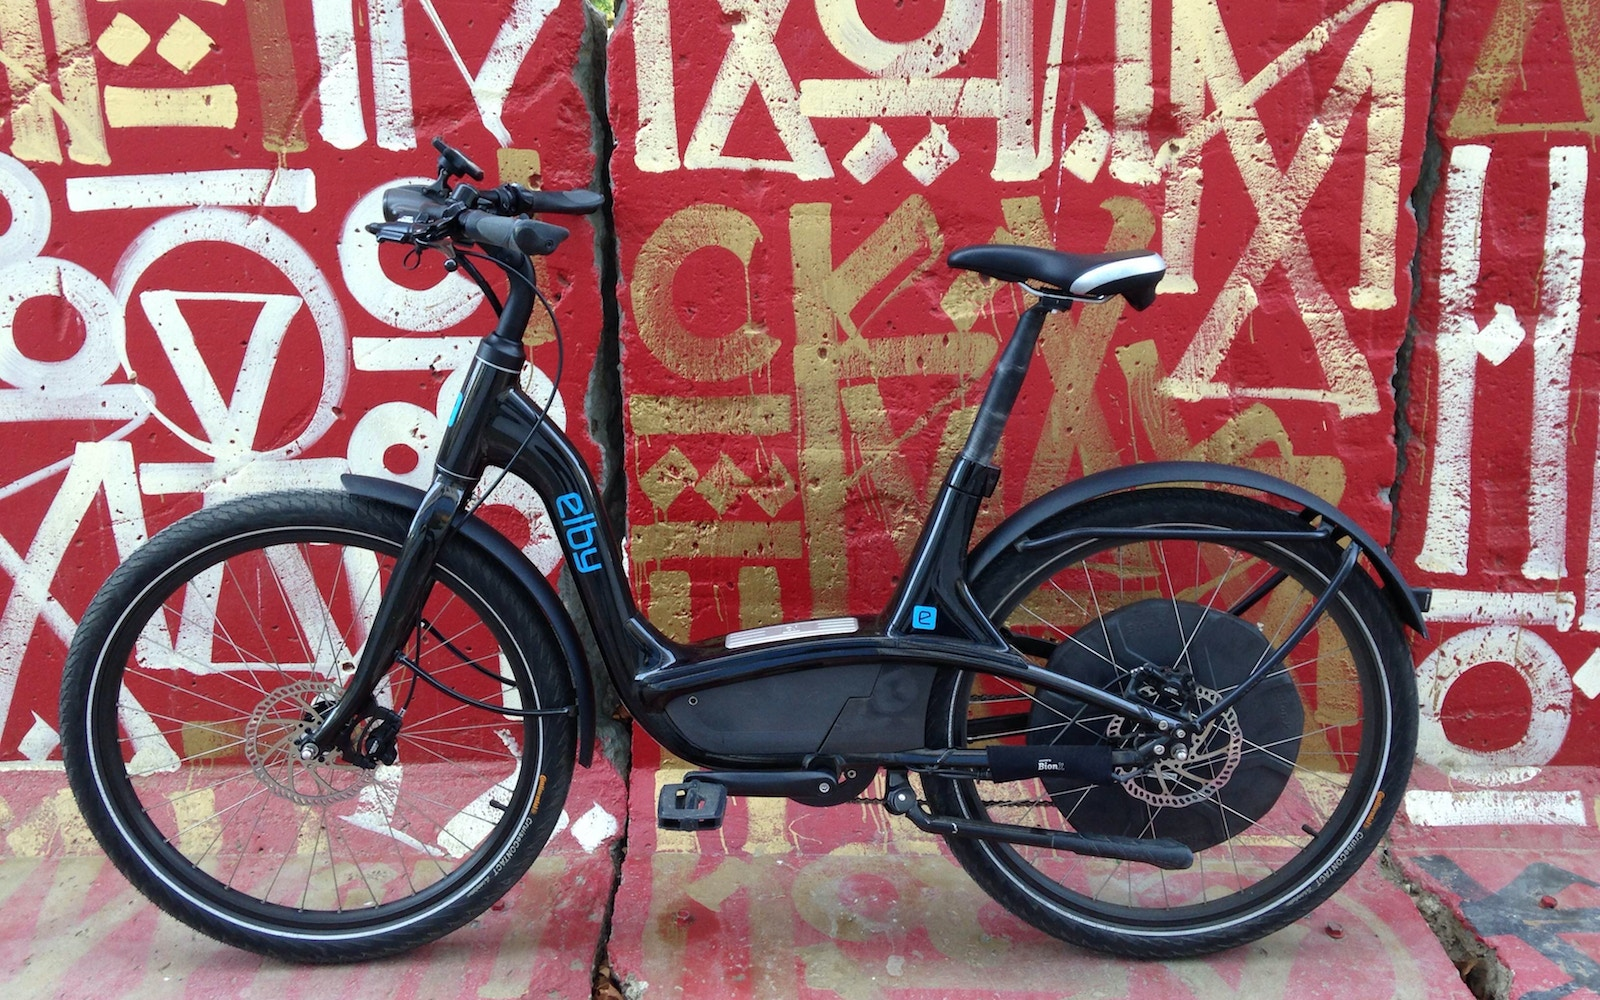 Power struggle: A devoted roadie wrestles with the joys and perils of an e-bike